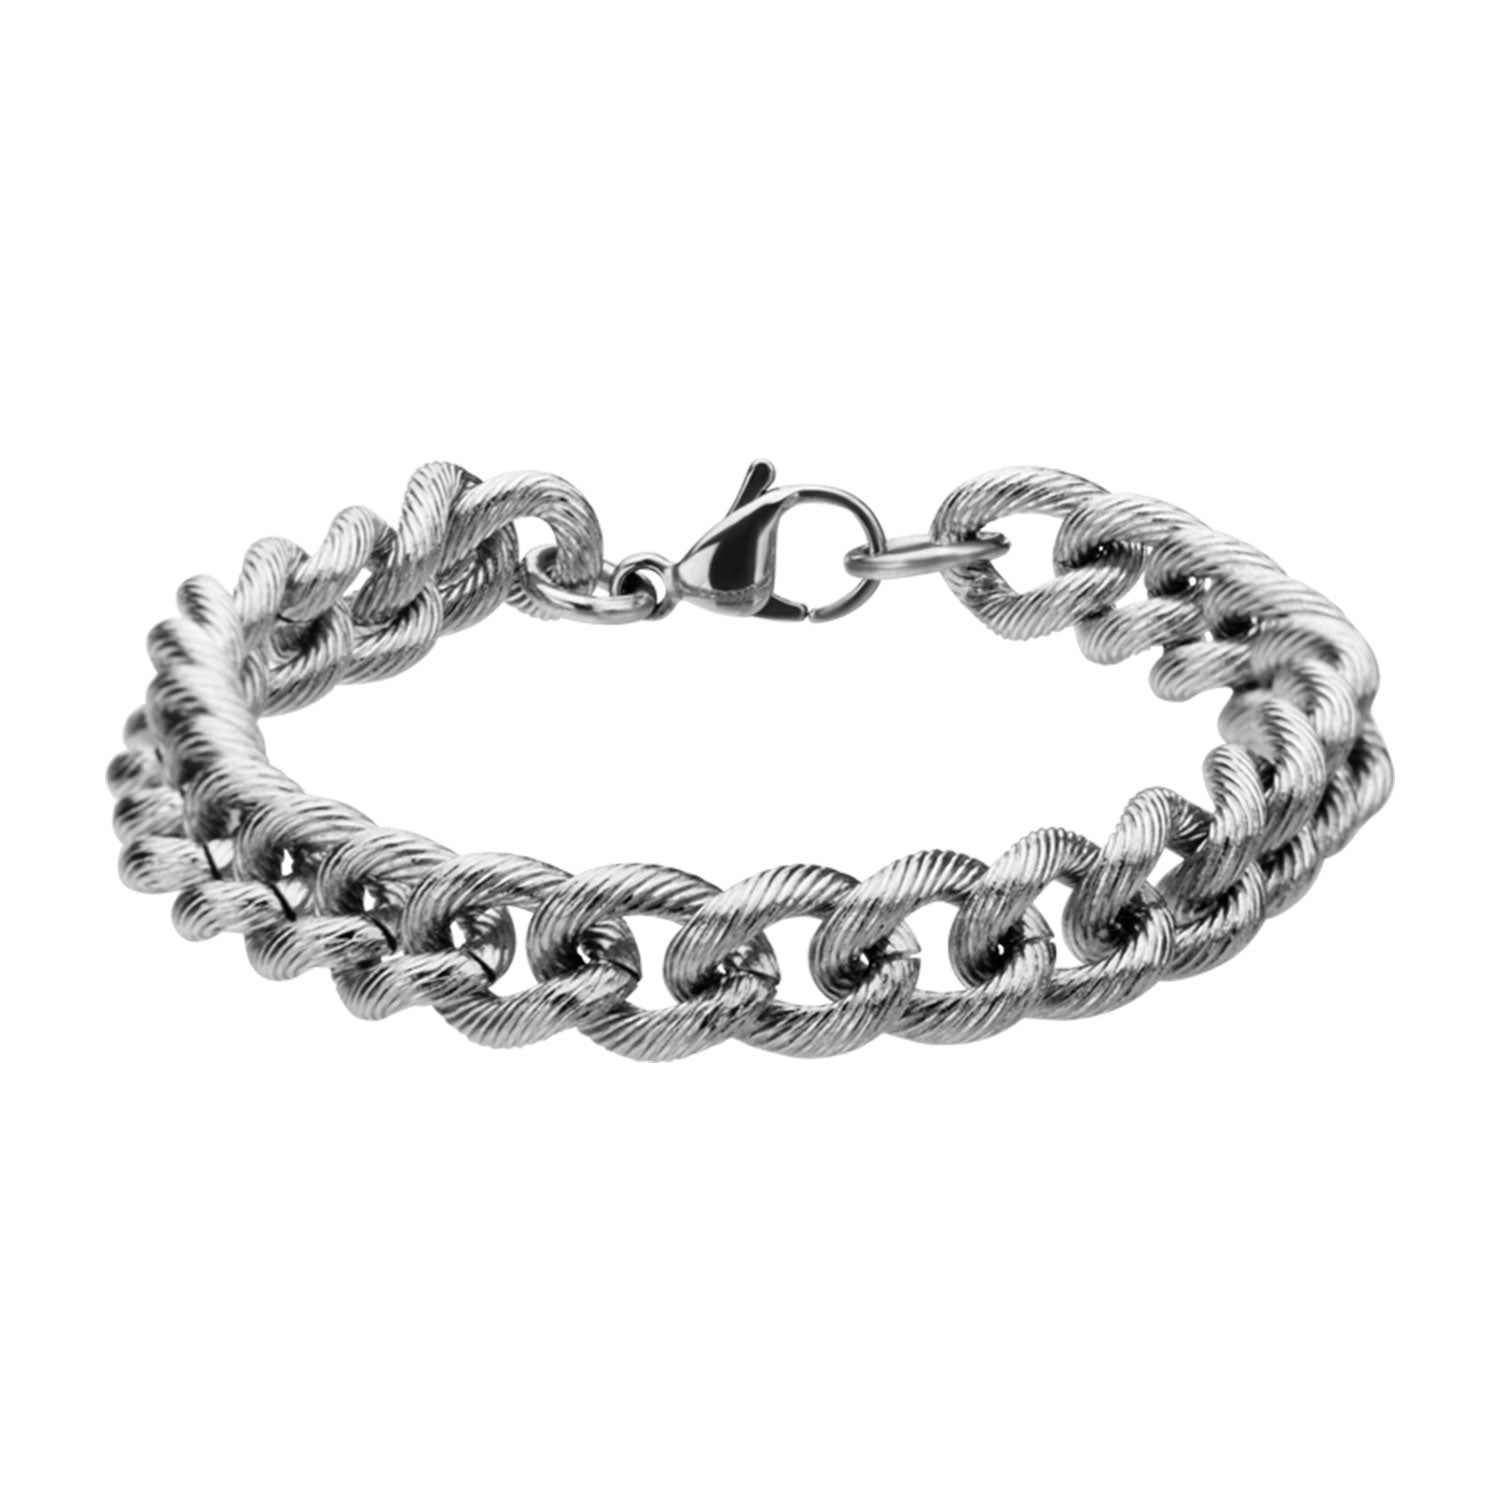 "Inox Jewelry 9mm Stainless Steel Curb Chain 8"" Bracelet BR2005"